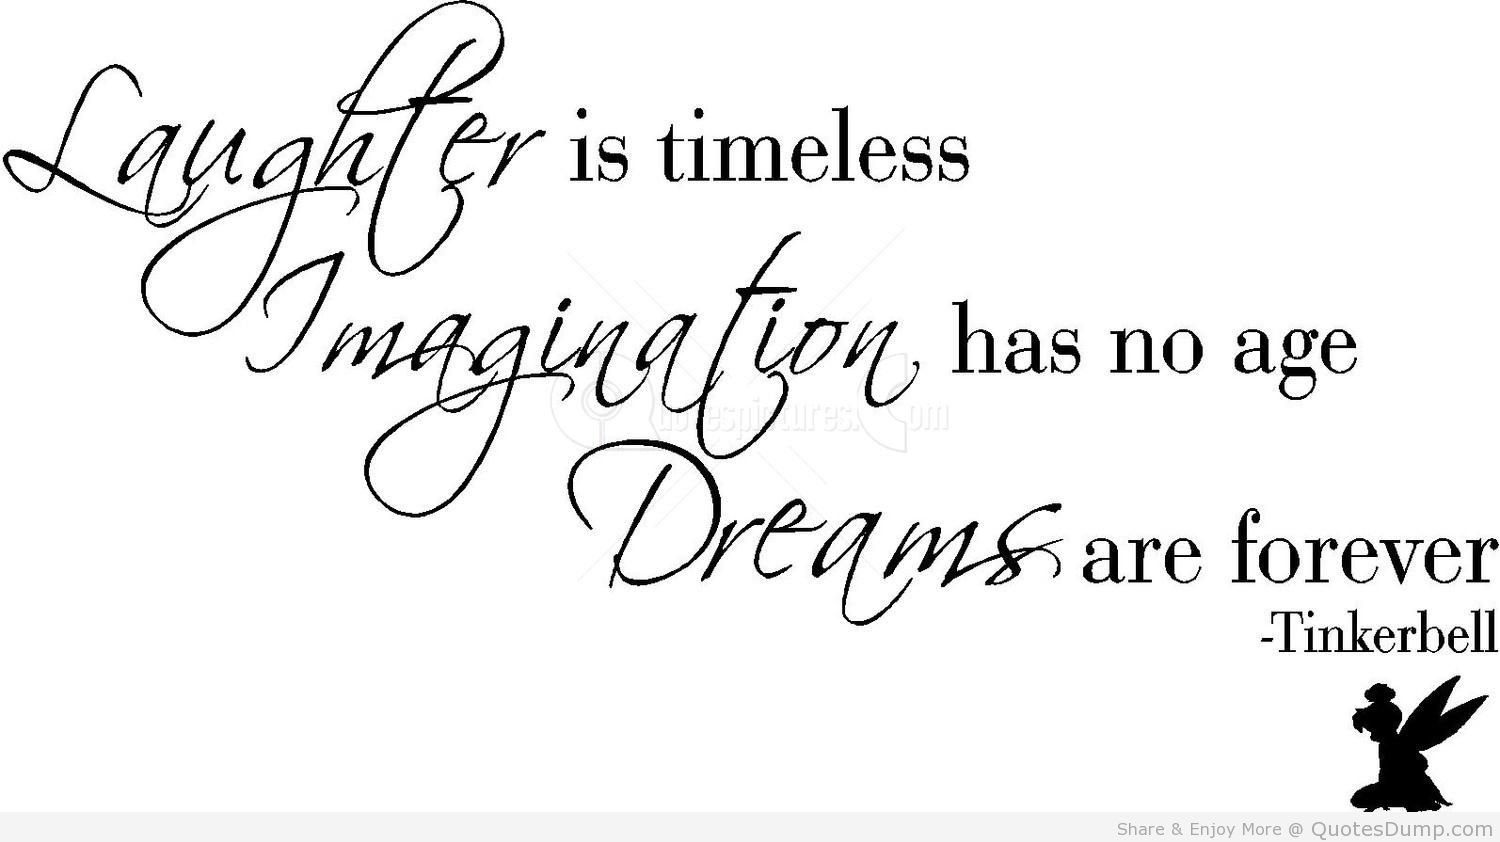 Laughter is timeless. Imagination has no age. And dreams are forever - Tinkerbell